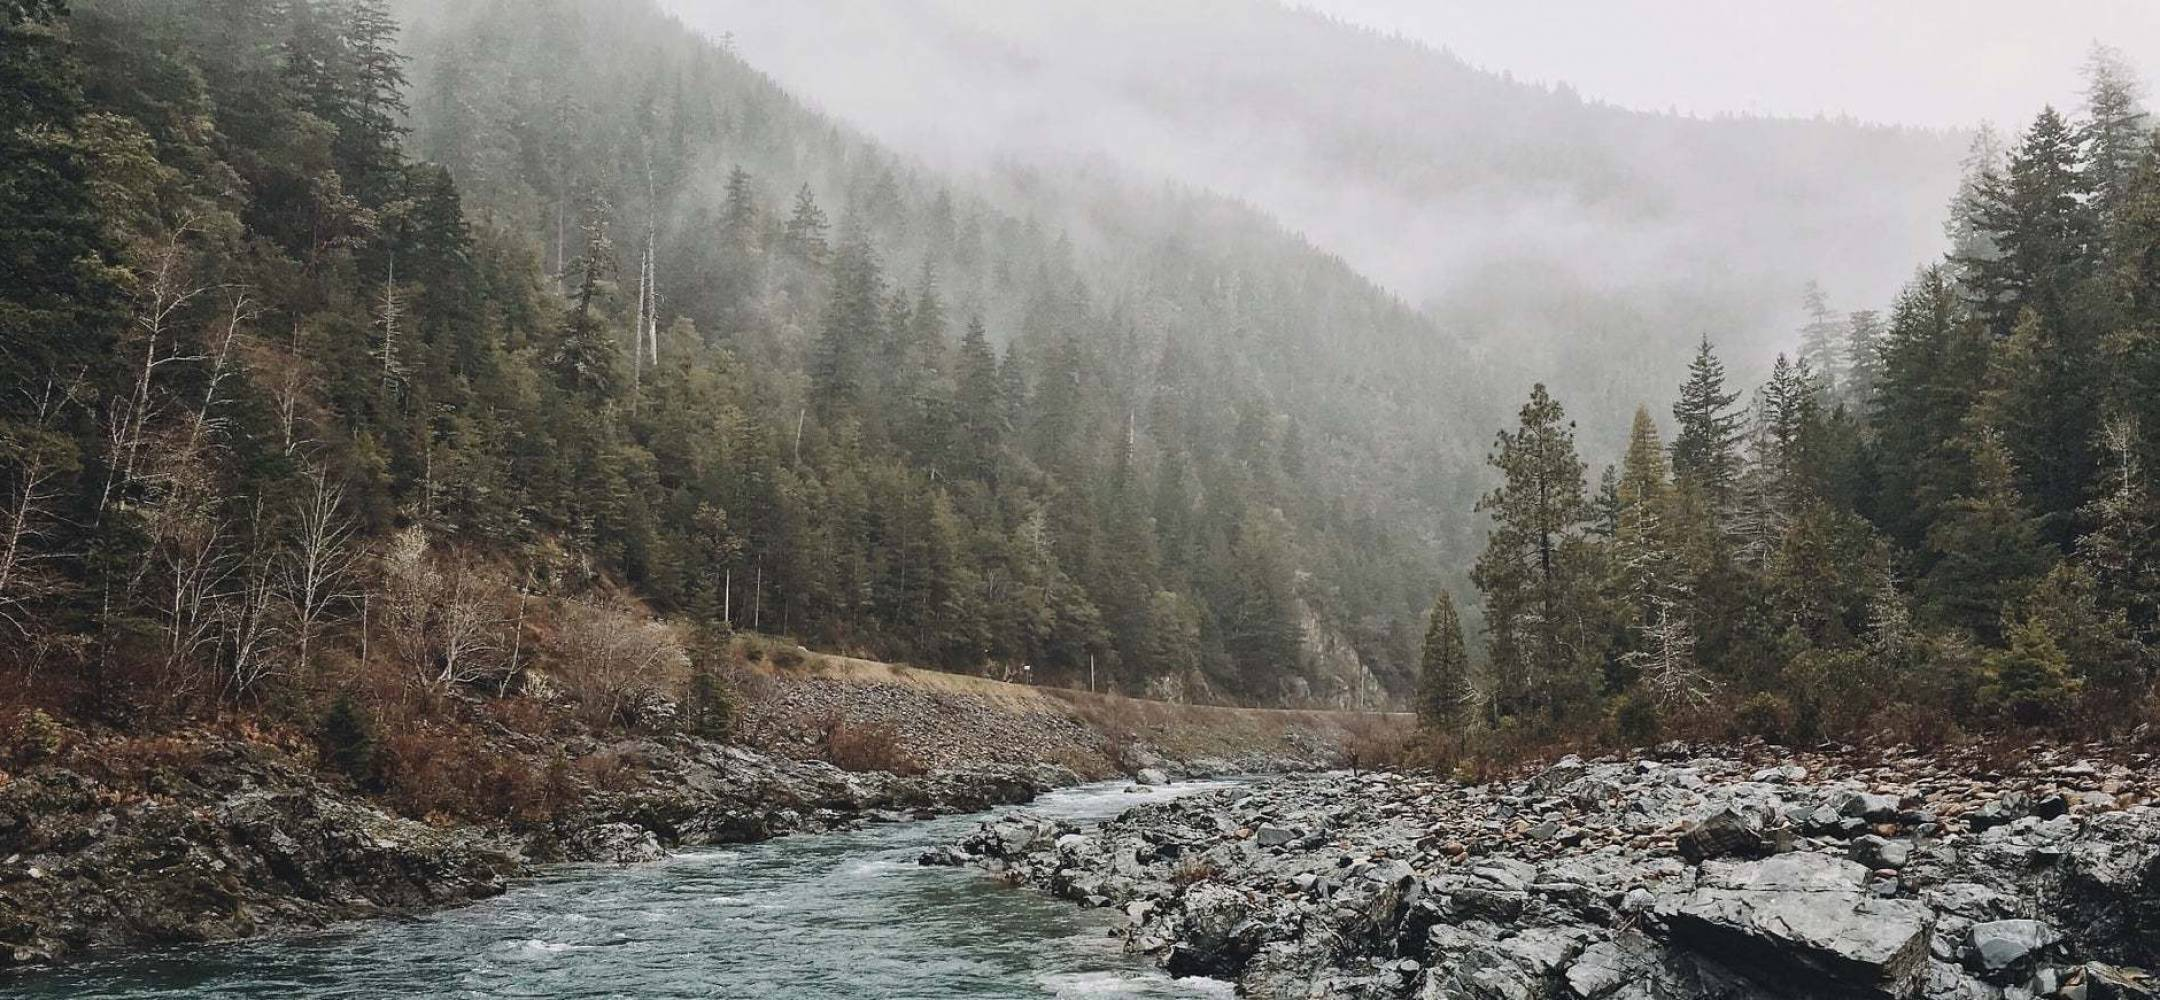 10 Wilderness Survival Tips That Could Save Your Life